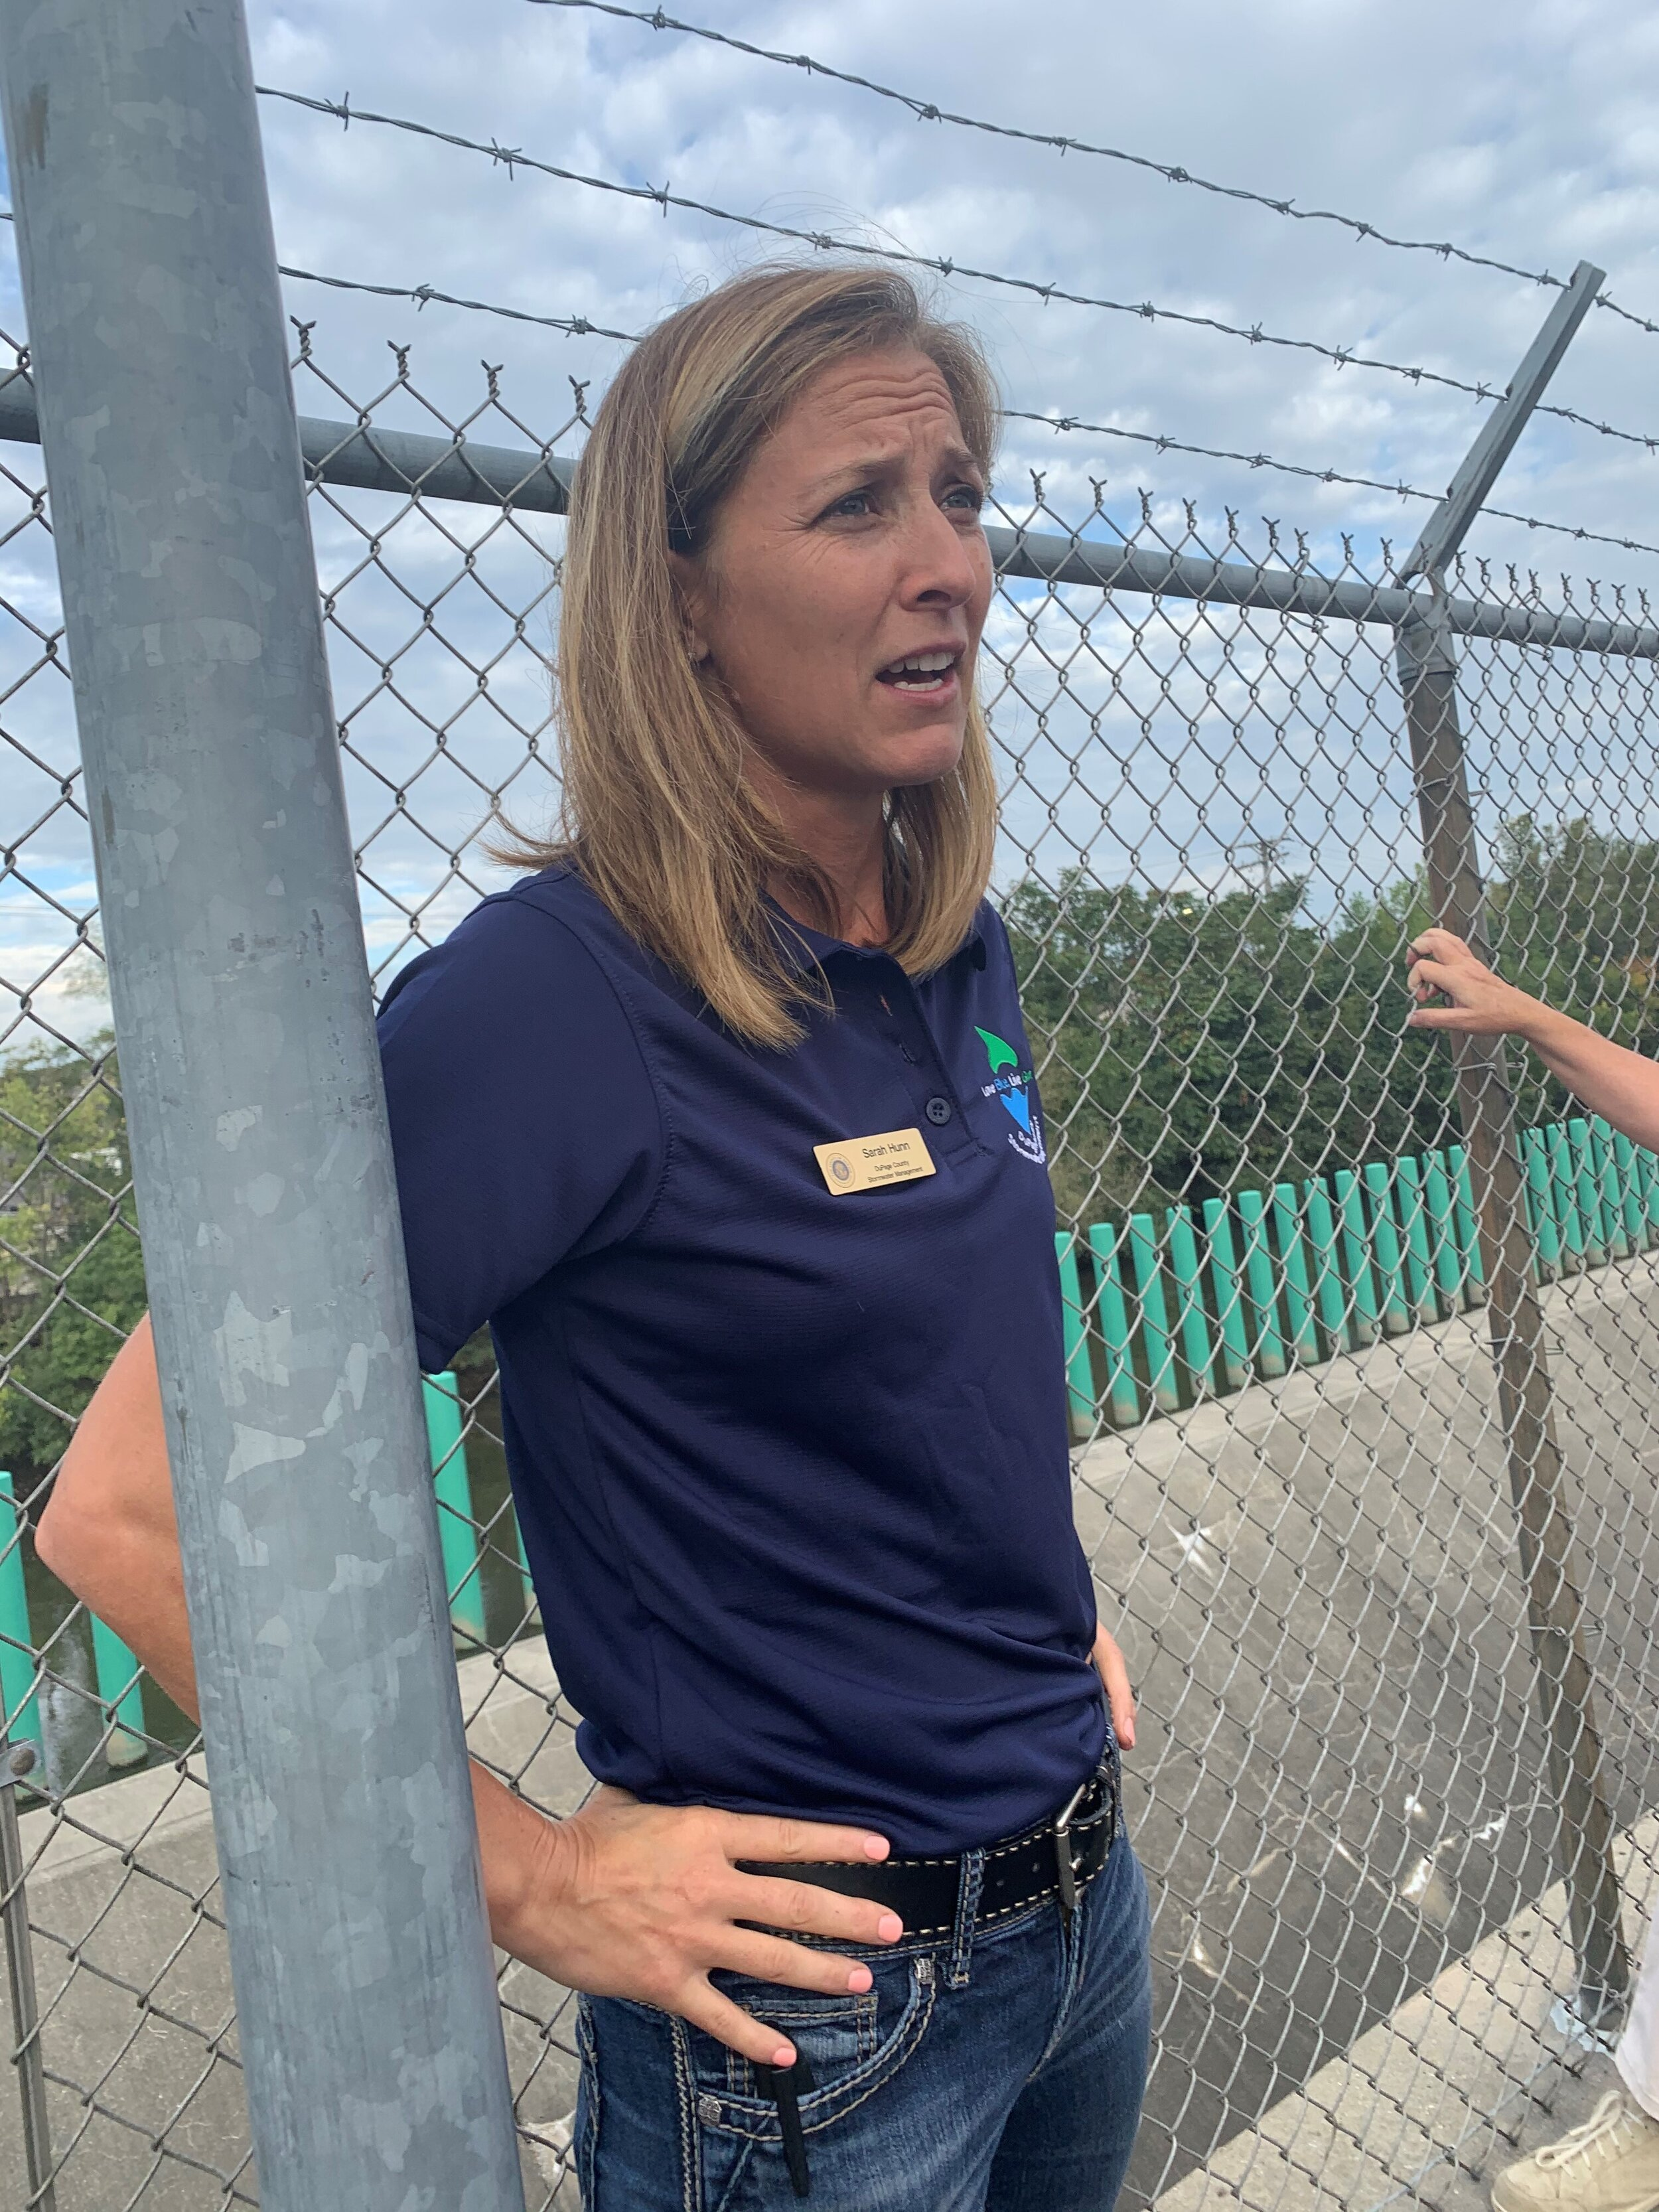 Storm Water Management Deputy Director Sarah Hunn gave an overview of the quarry operation during the recent tour of the facility